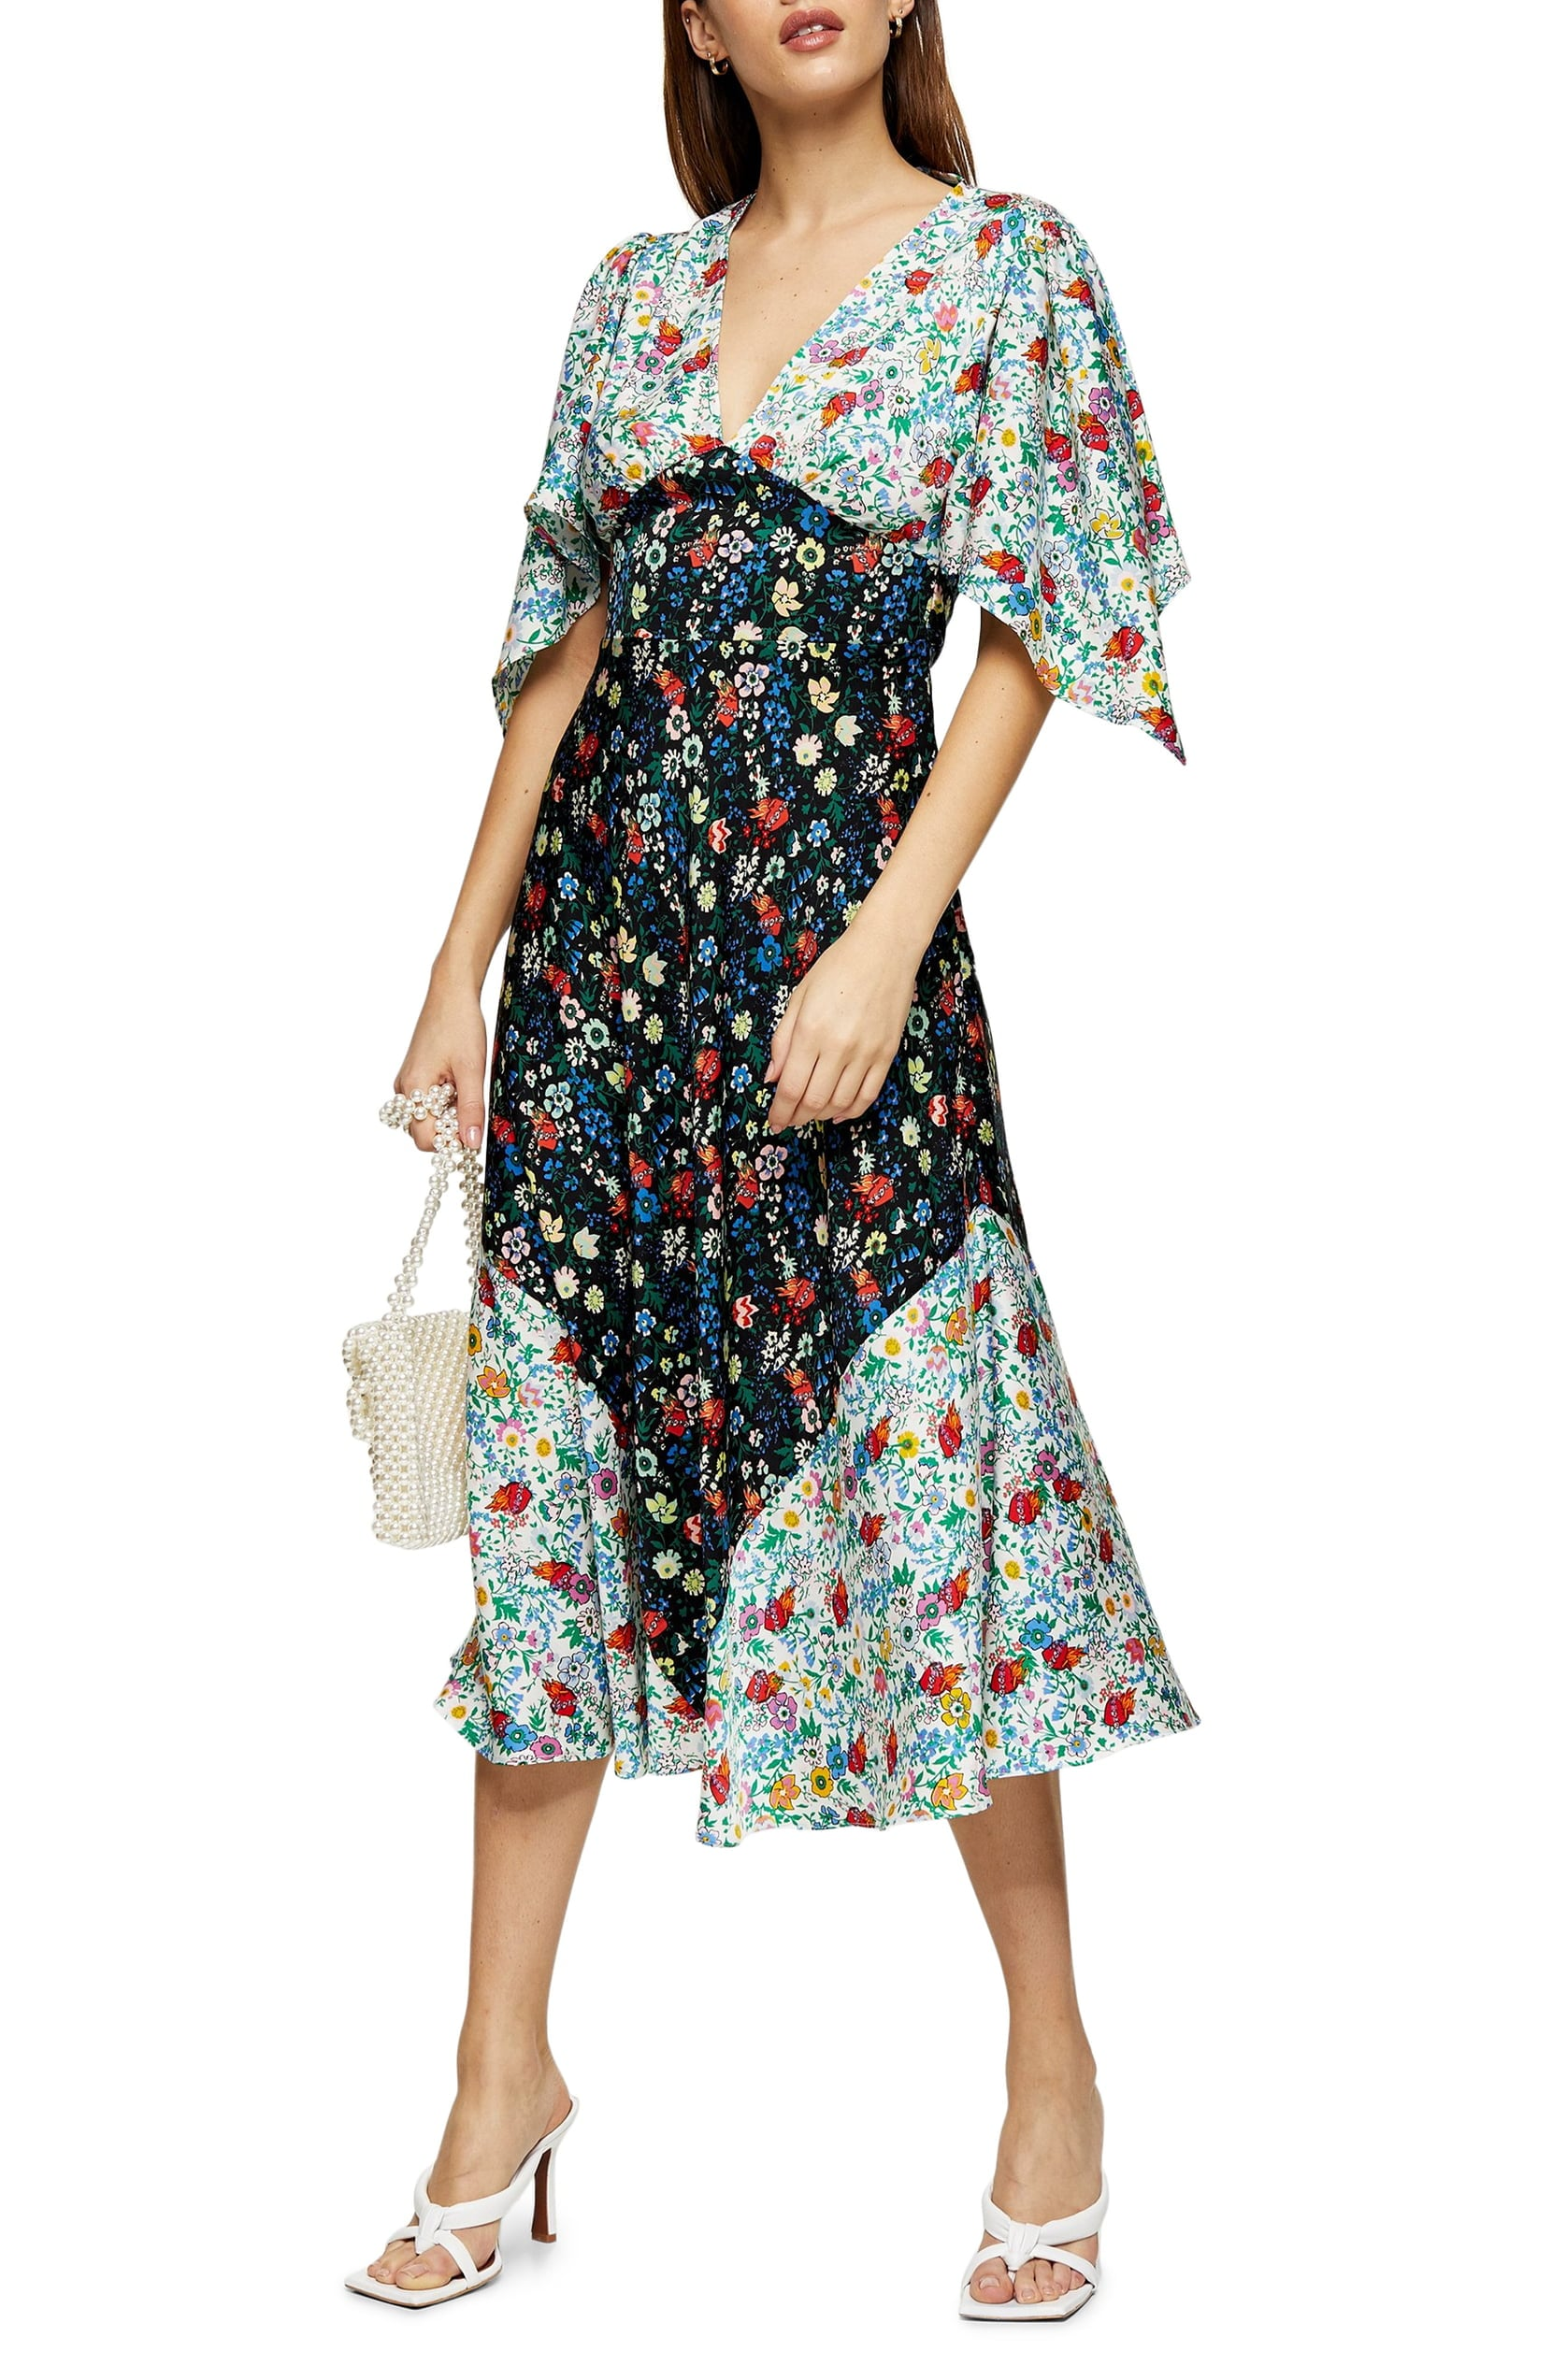 The Best Dresses For All Those Spring and Summer Weddings